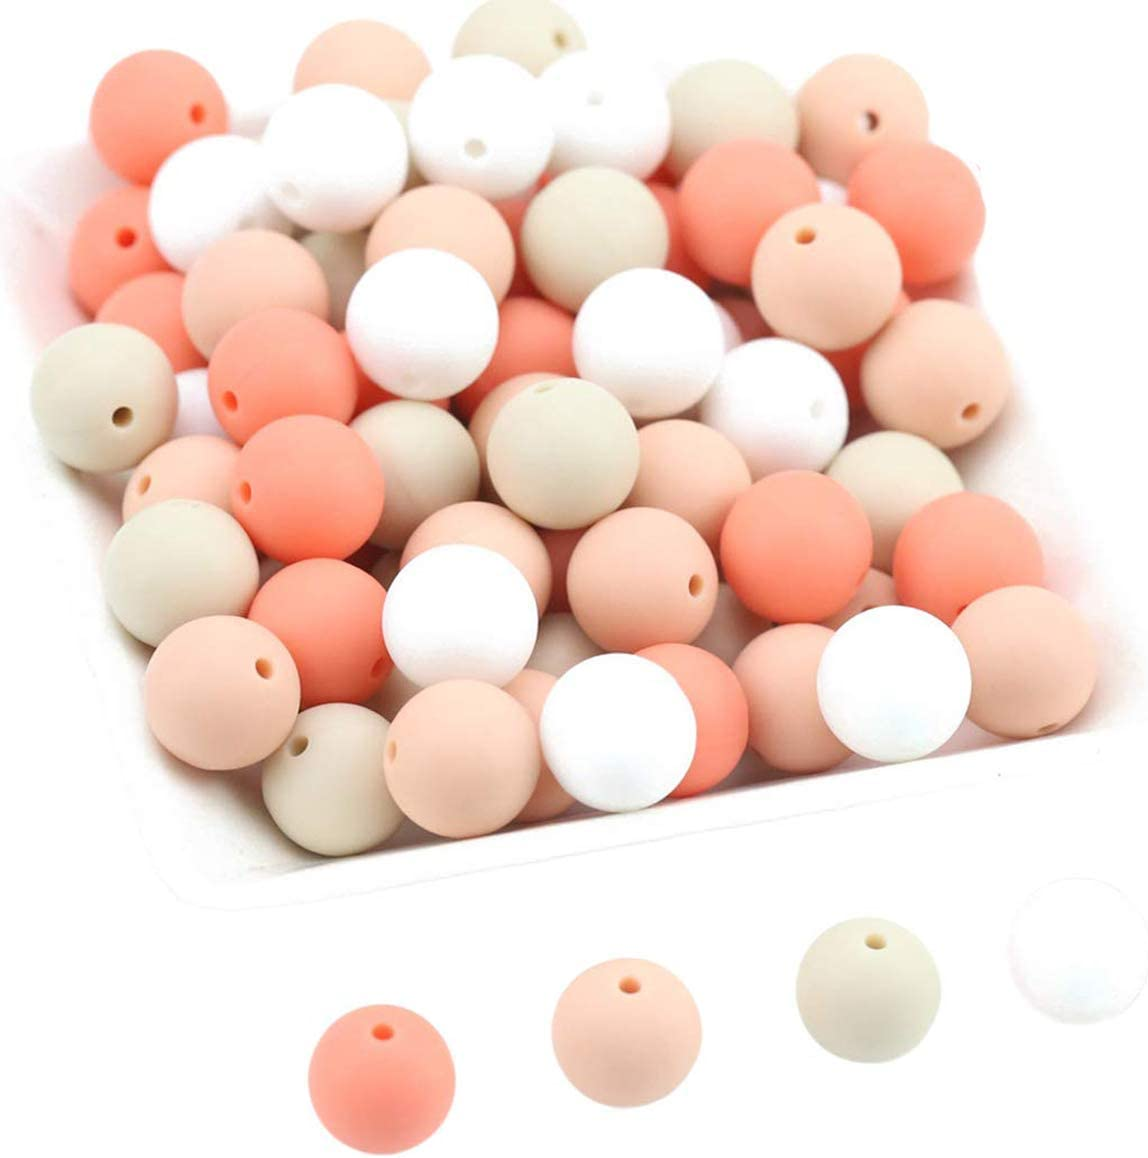 Promise Babe Round Silicone BeadsMix Color Silicone Teething Beads 100pc 12mm DIY Supplies BPA Free